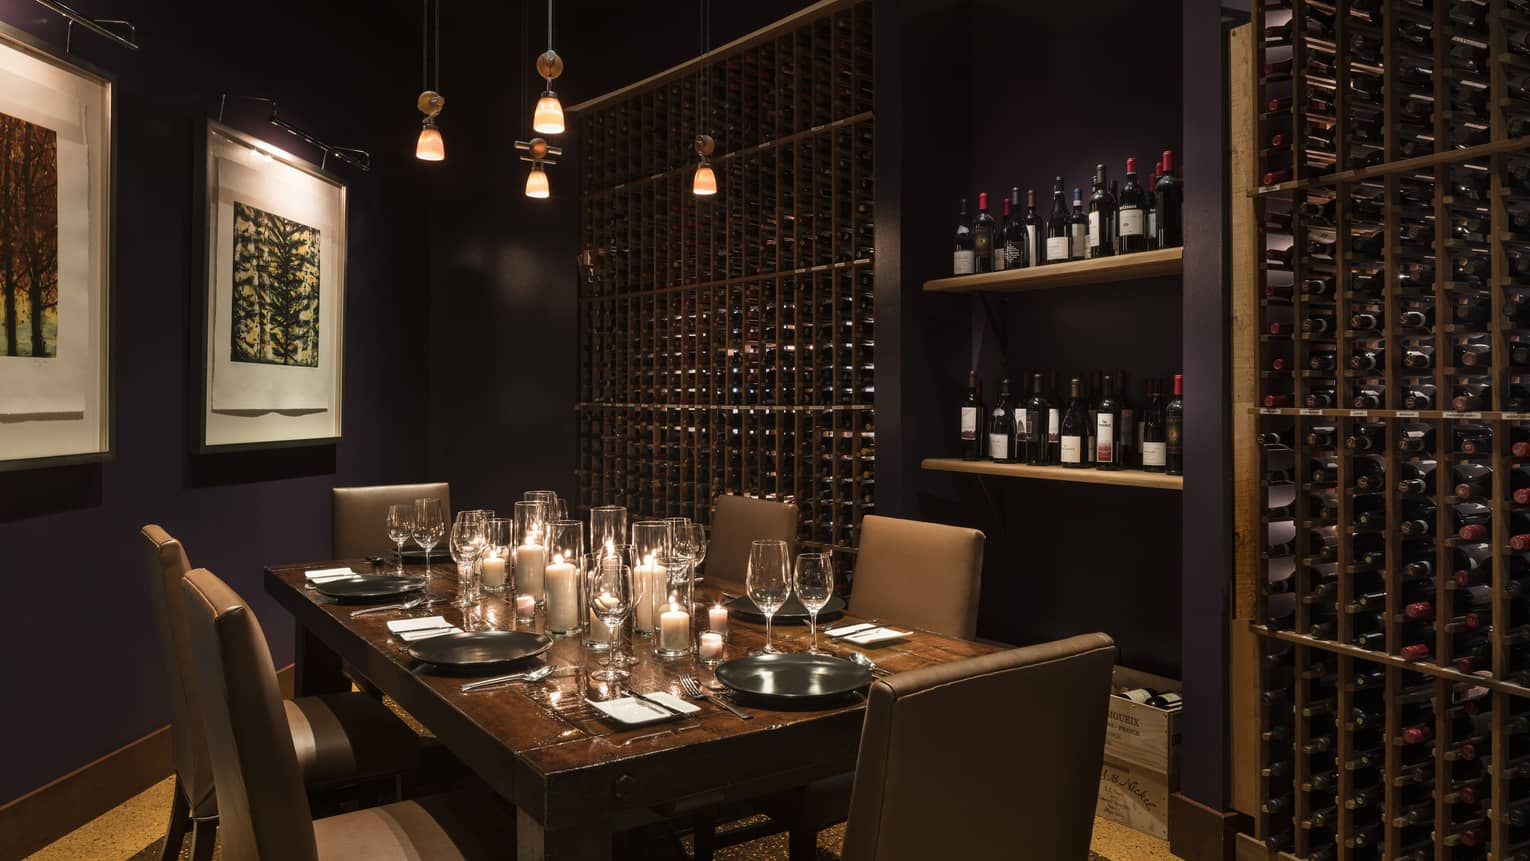 Private candlelit dining table in wine cellar